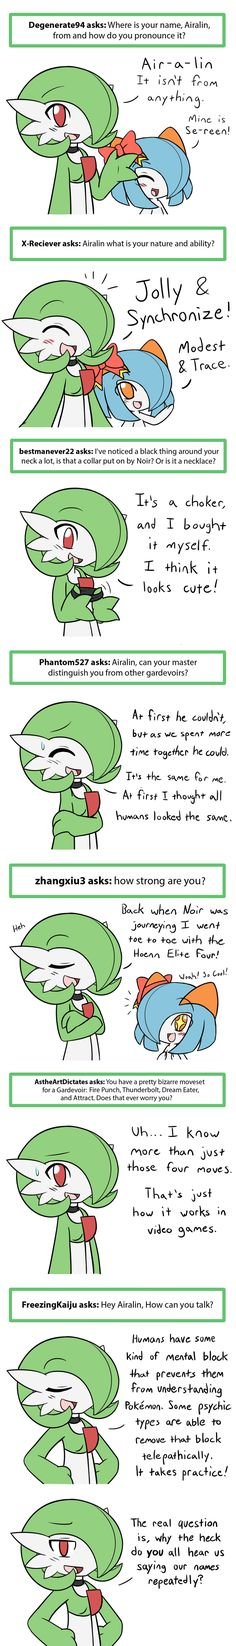 Ask Airalin Q26-32 by RakkuGuy.deviantart.com on @DeviantArt